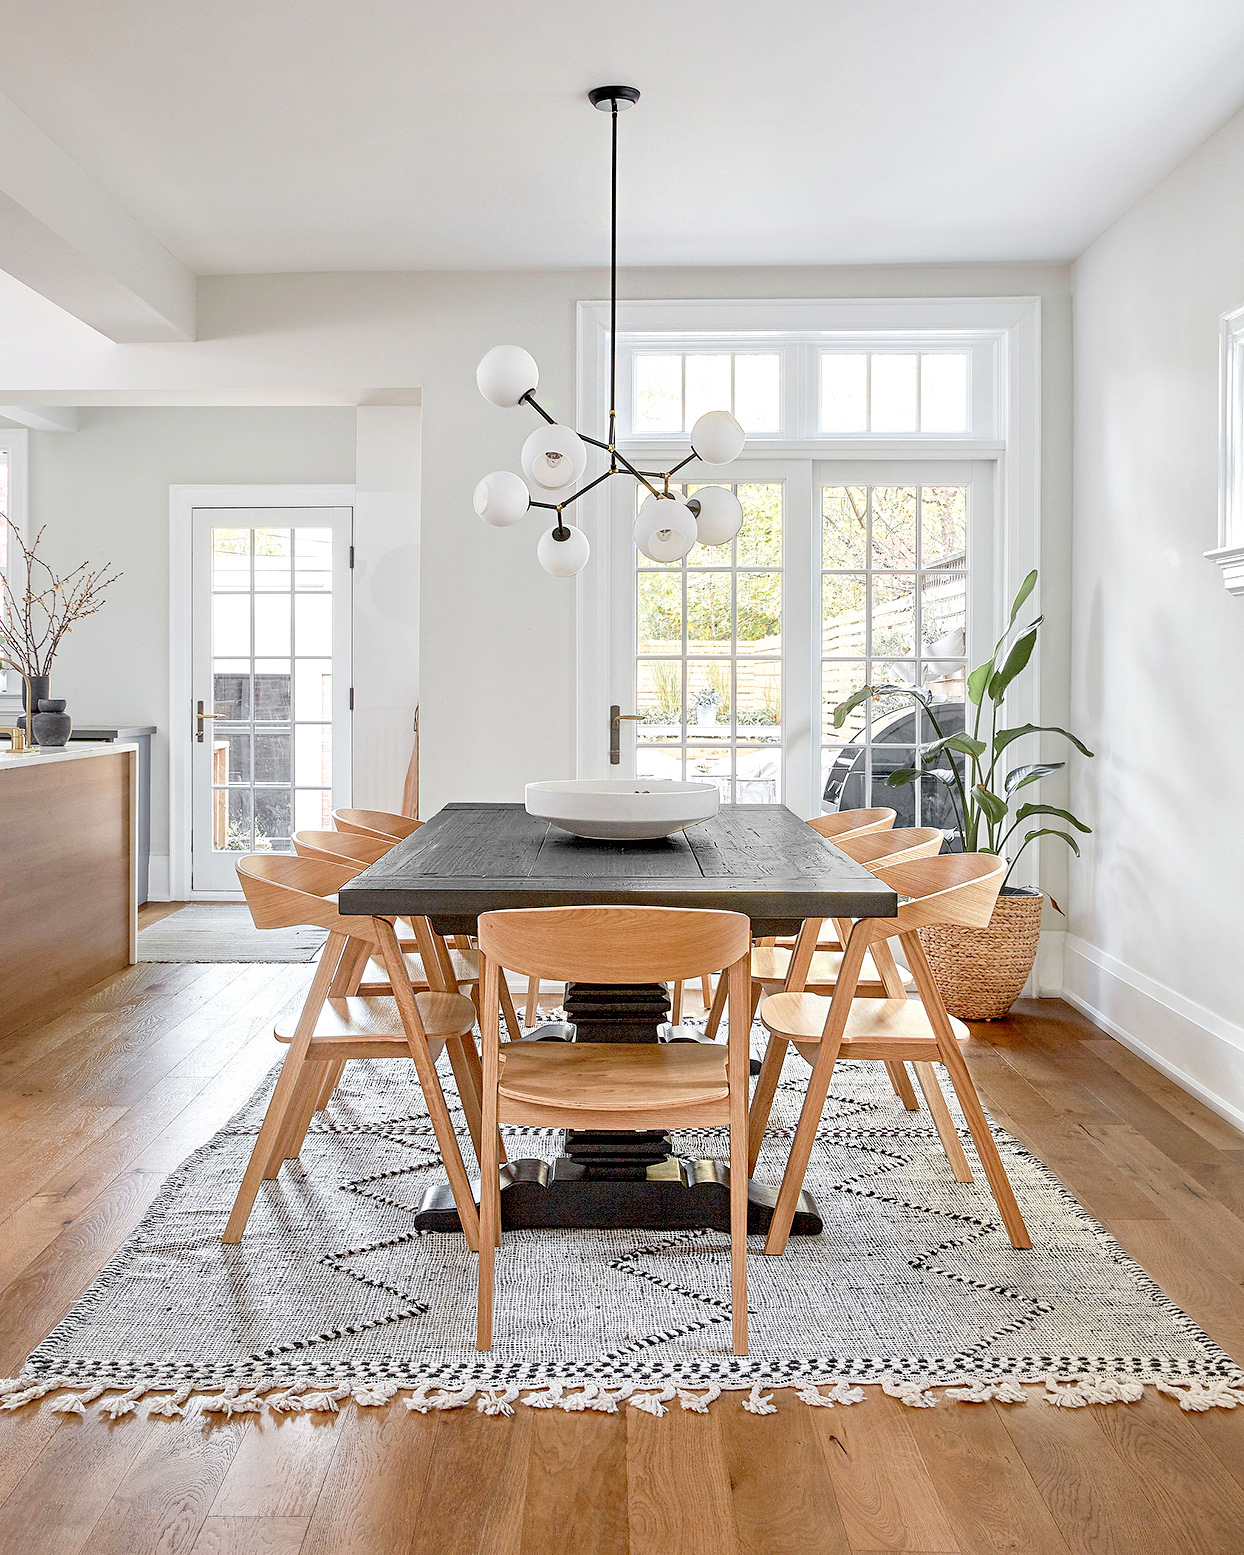 Dining area with large woven rug and wooden table and chairs